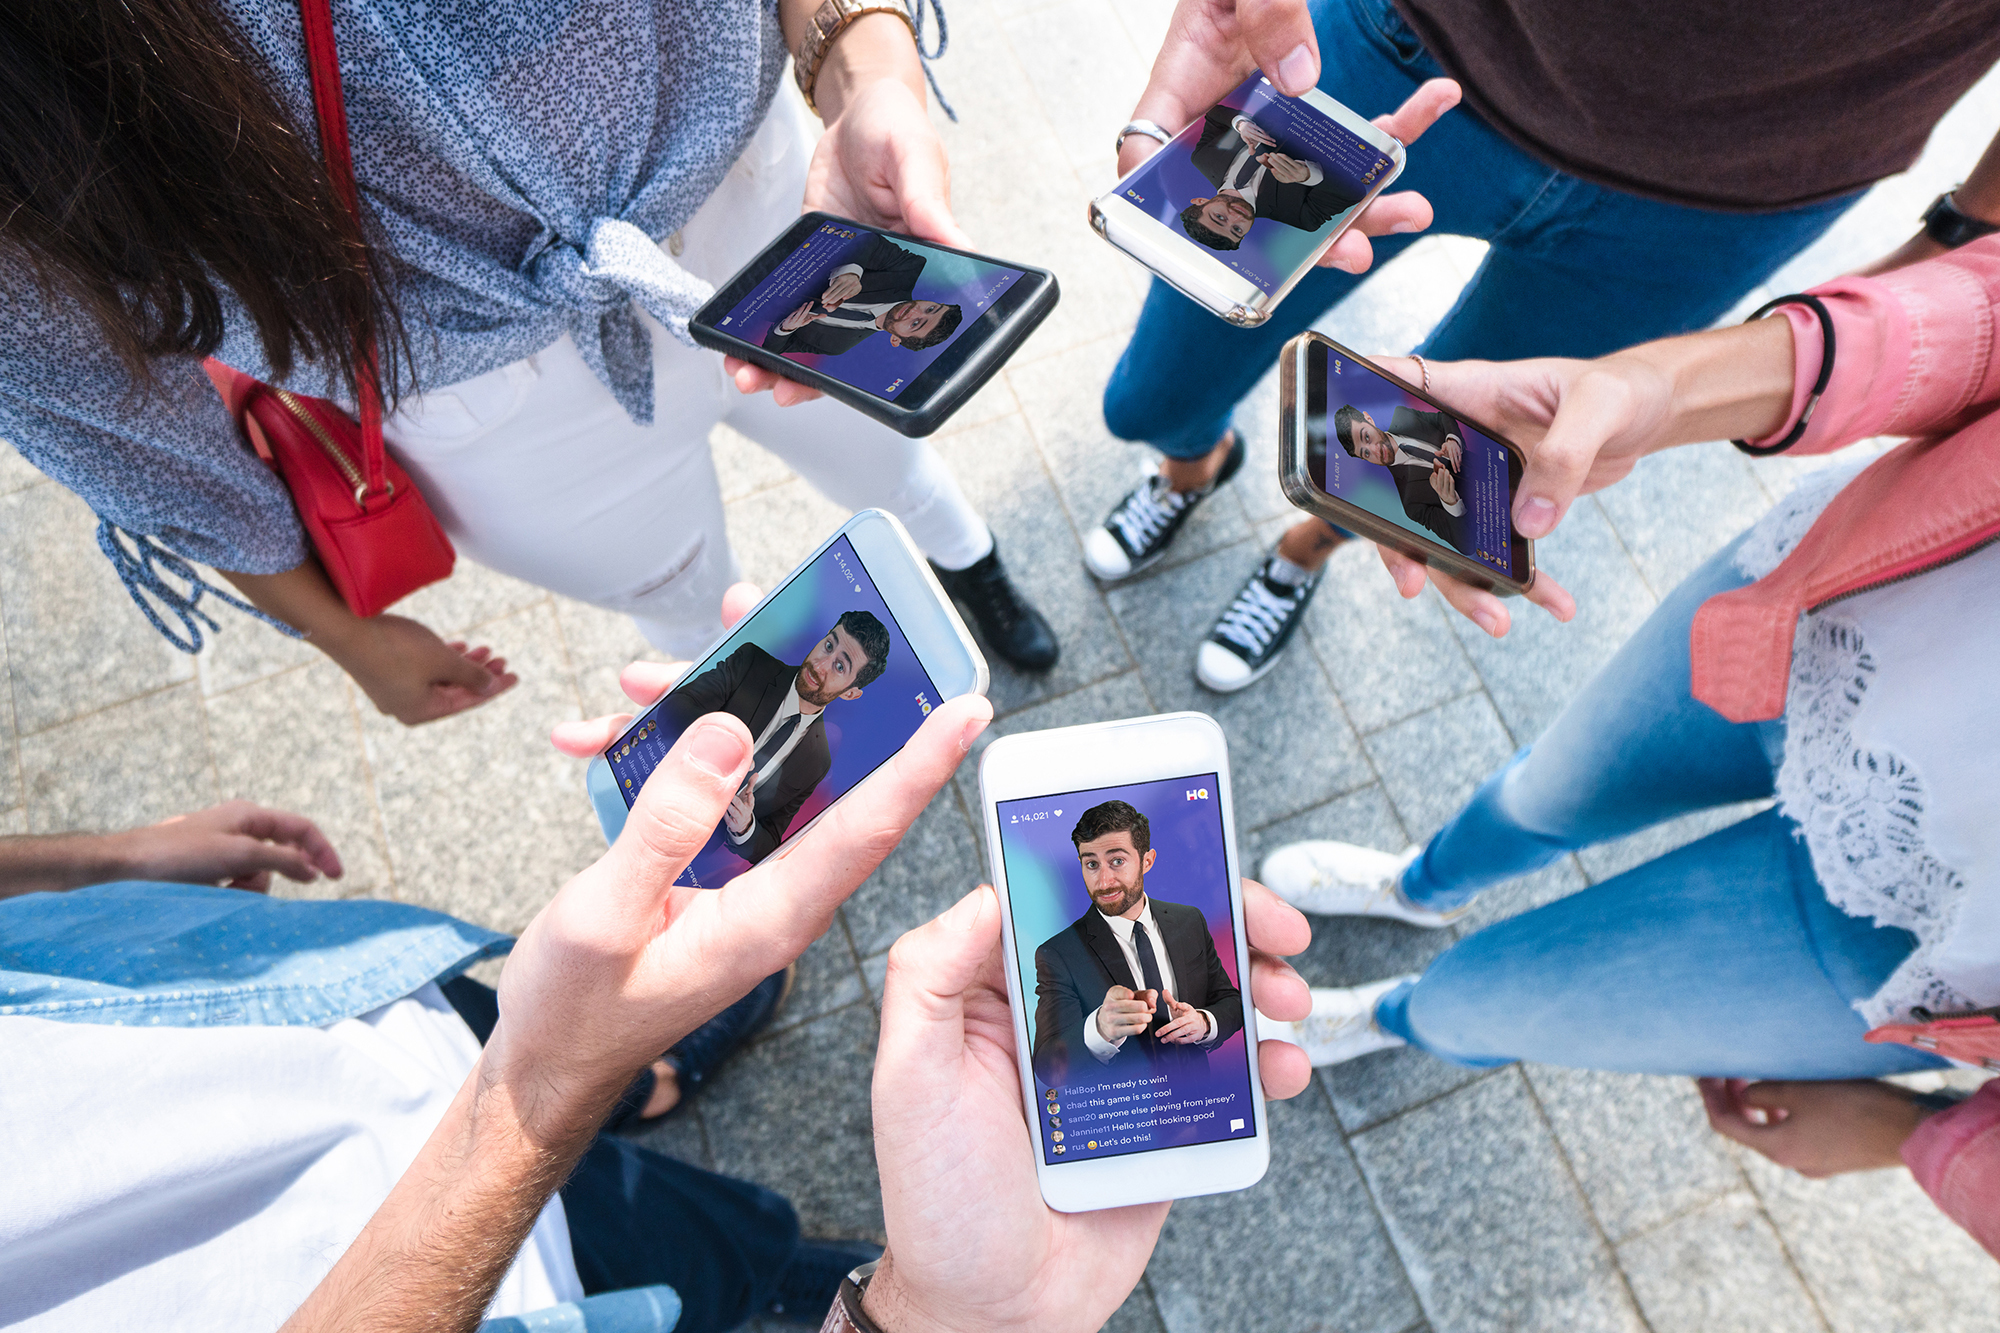 A group of people playing HQ Trivia on their phones.